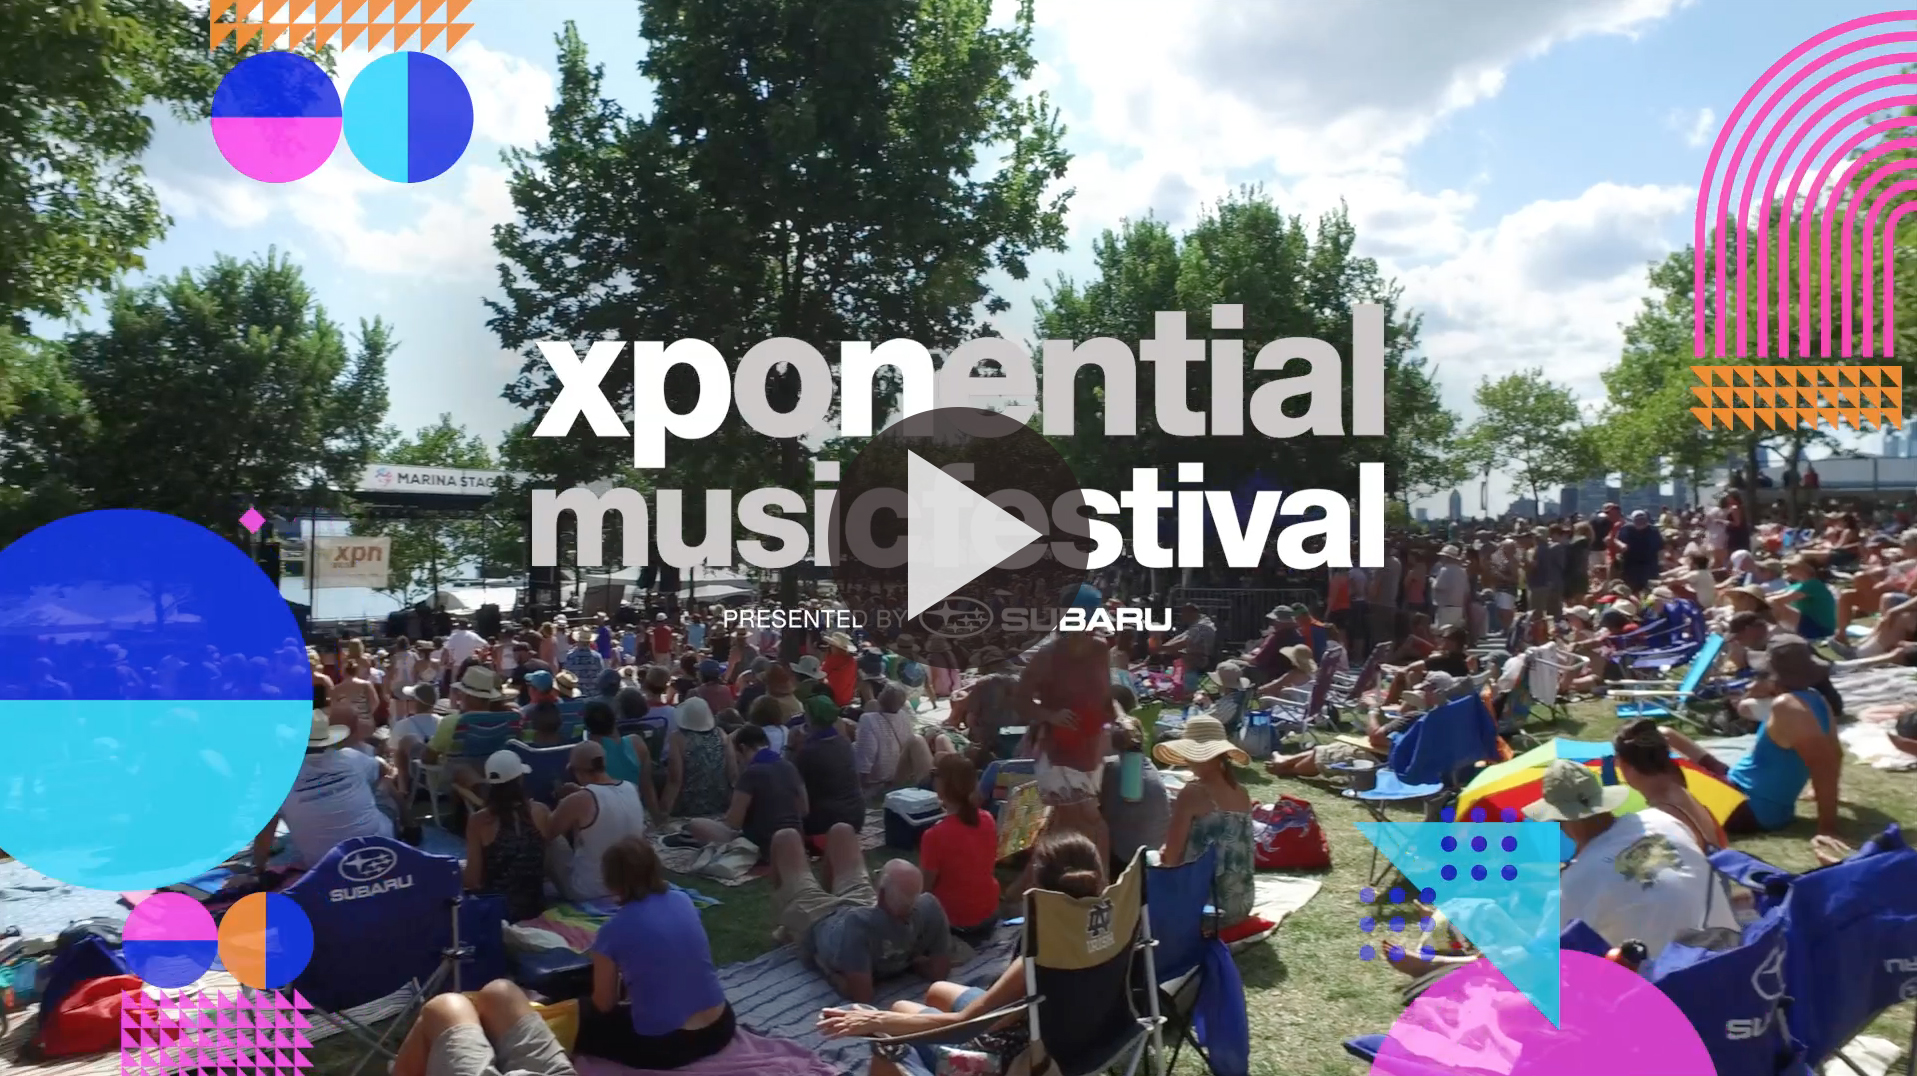 XPoNential Music Festival 2019